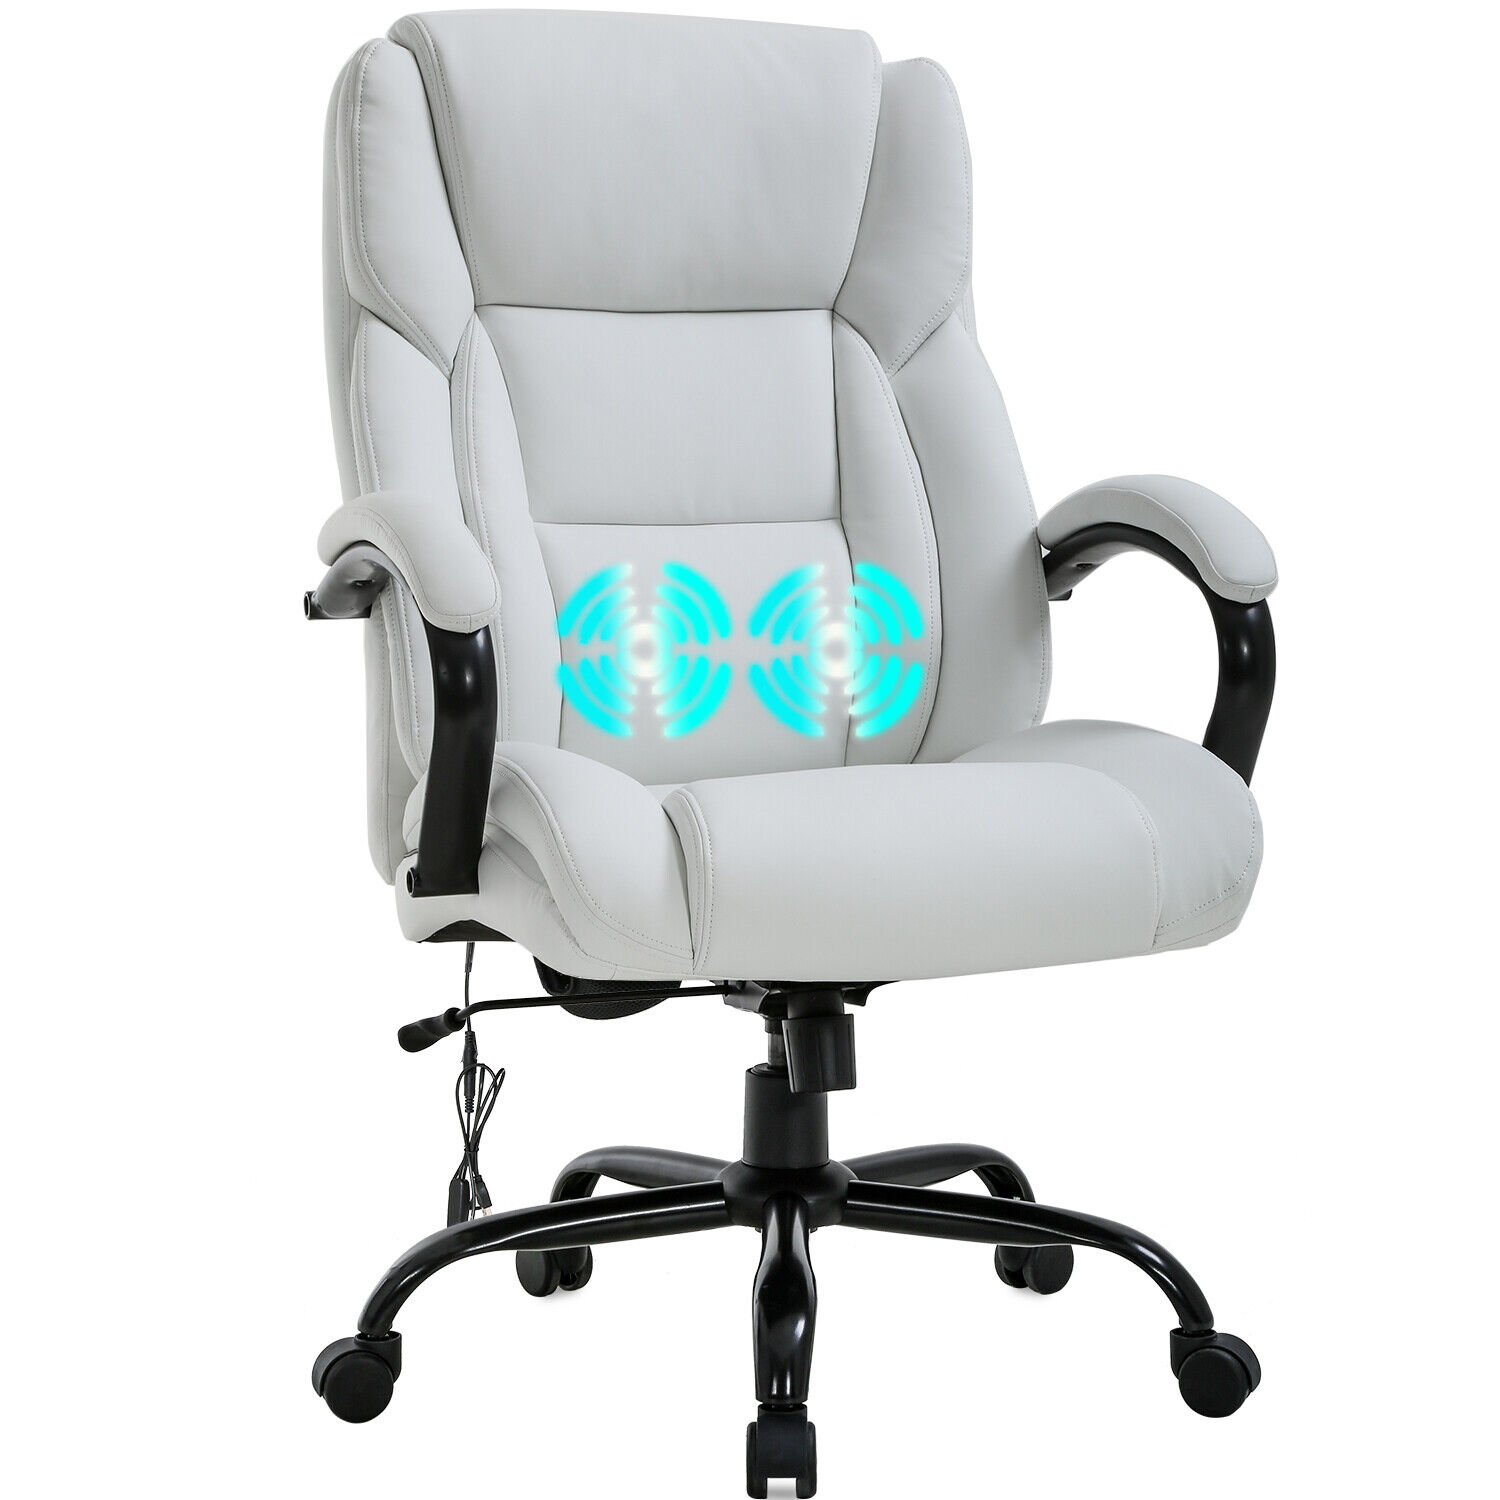 Big and Tall Office Chair 500lb Wide Seat Desk Chair with Lumbar Support Armrest 2